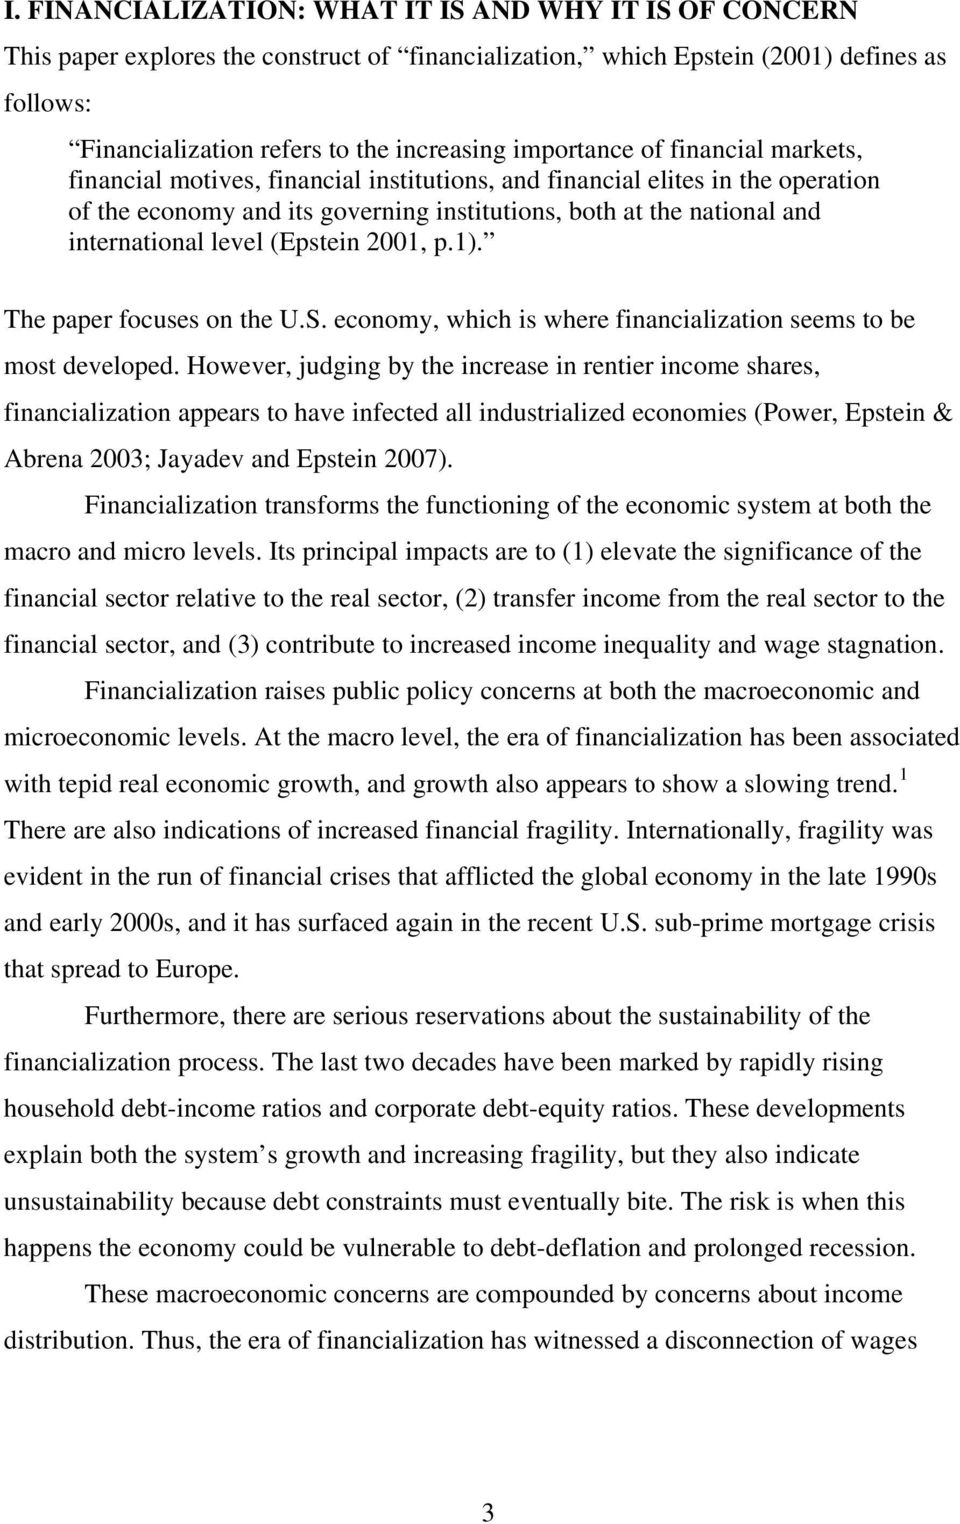 level (Epstein 2001, p.1). The paper focuses on the U.S. economy, which is where financialization seems to be most developed.